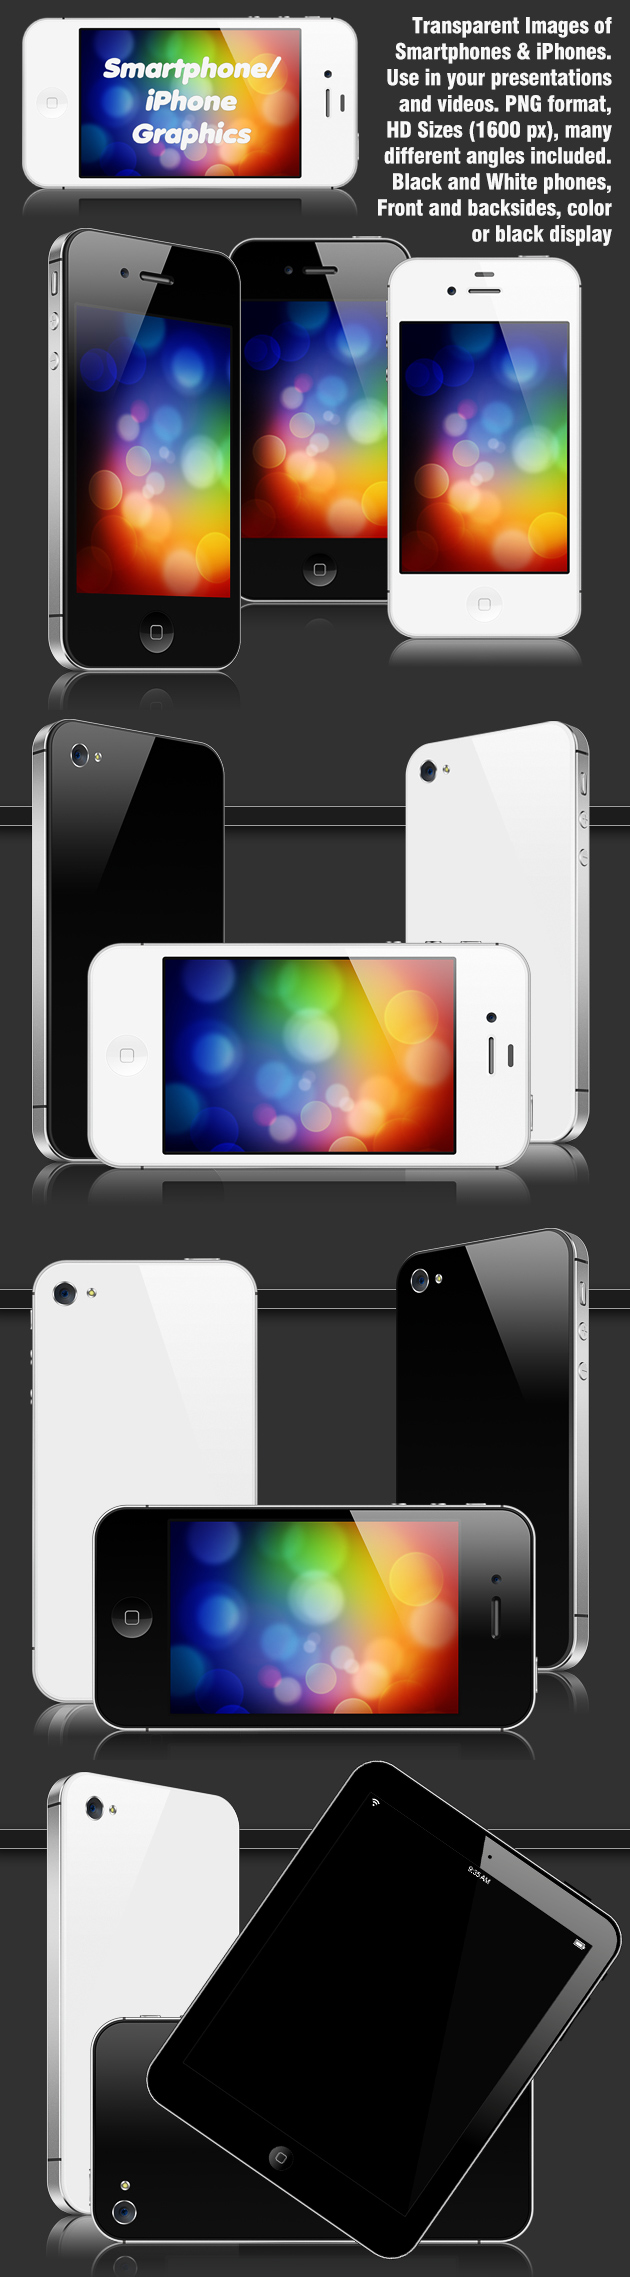 PhoneGraphicsOverview